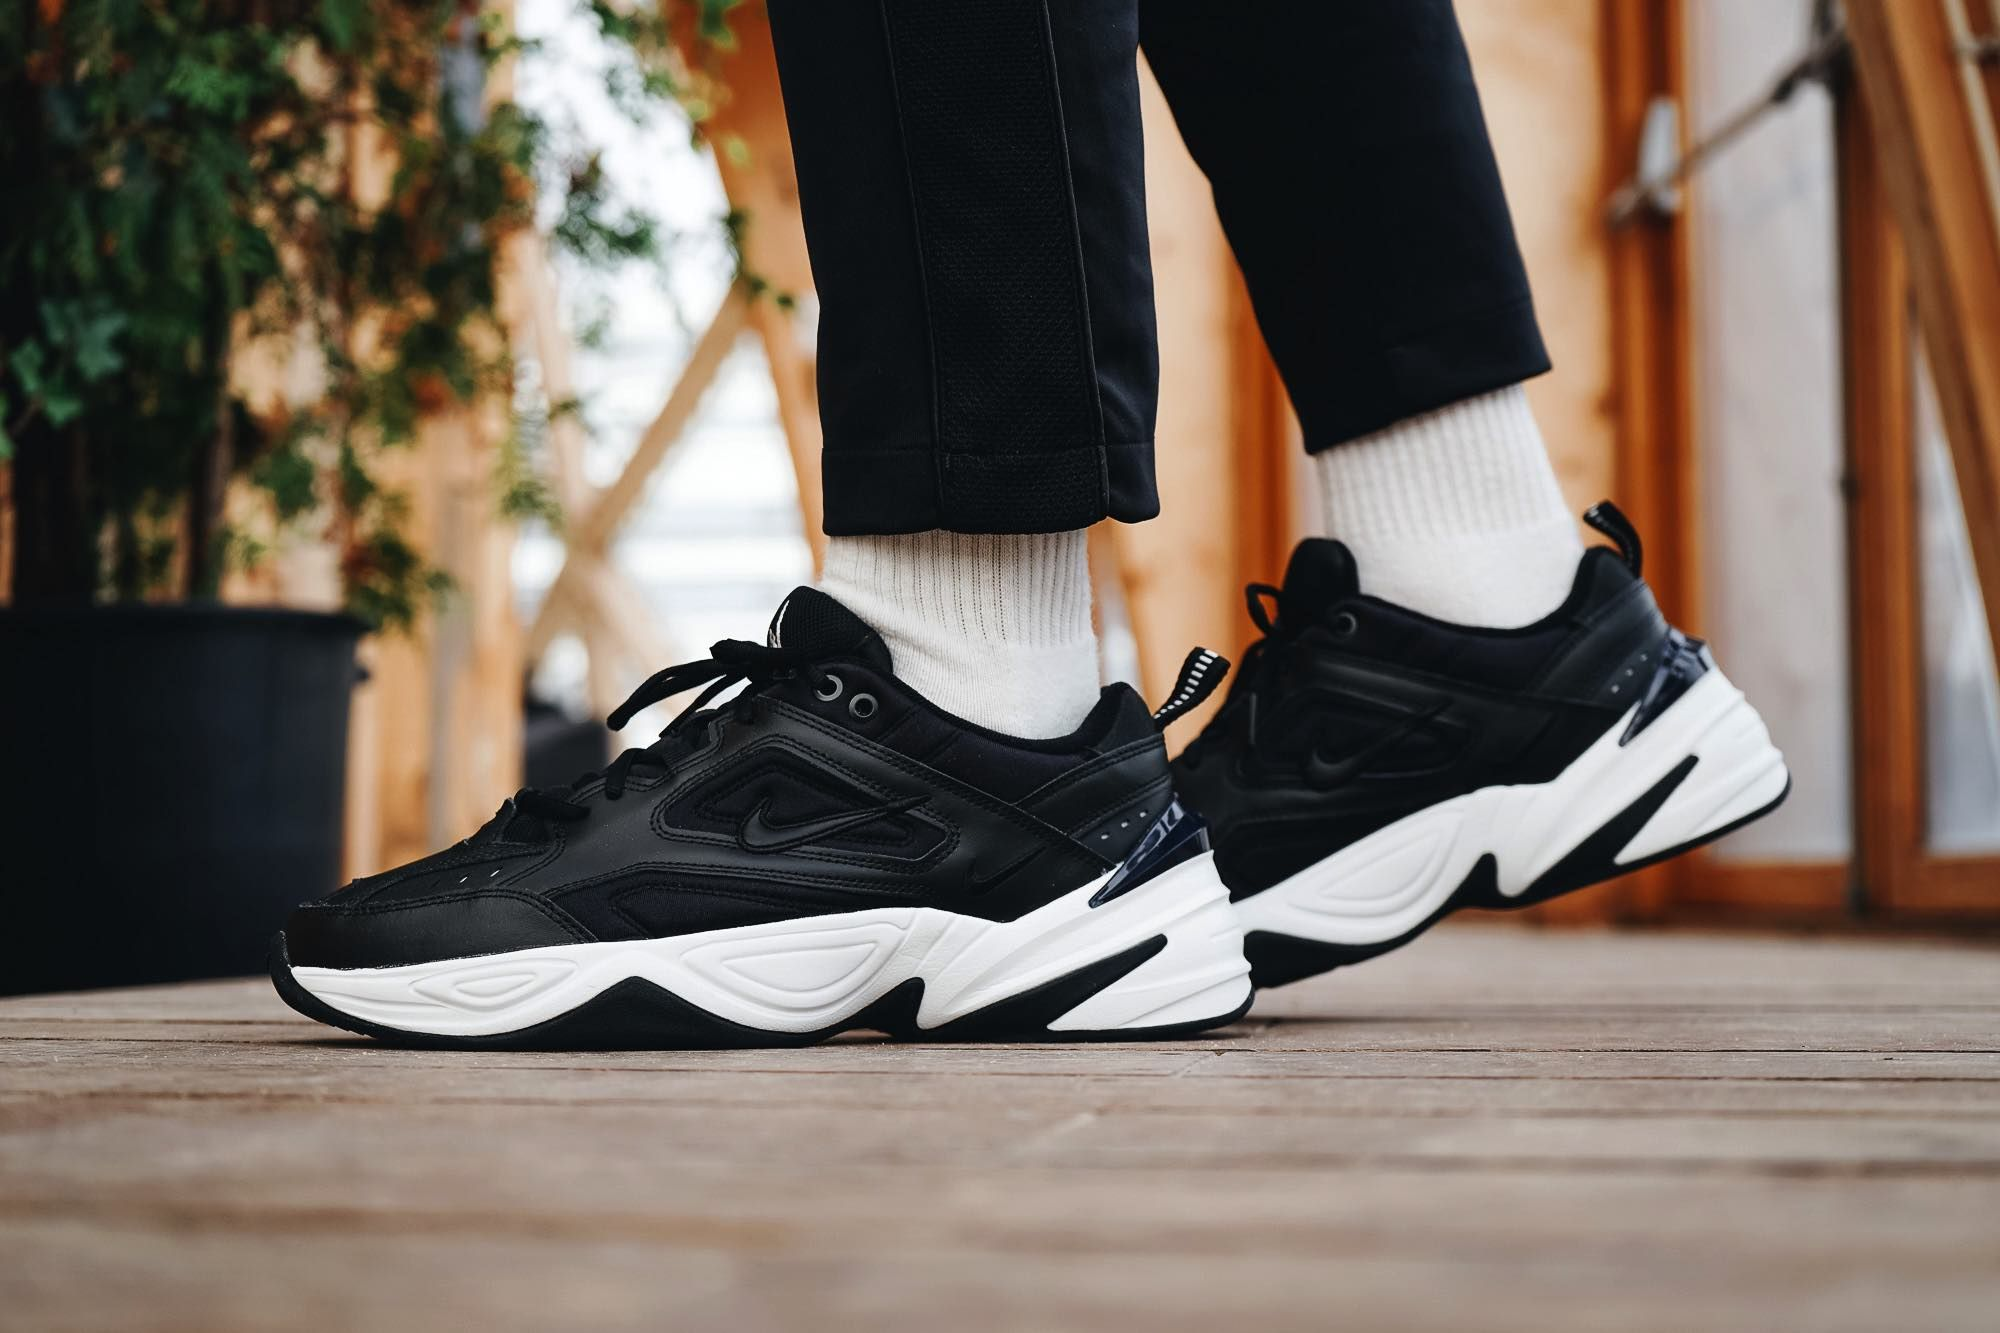 Completely Close To Nike M2k Tekno Sneaker In 2018 Sneakers Dior Sneakers Prada Sneakers For Men